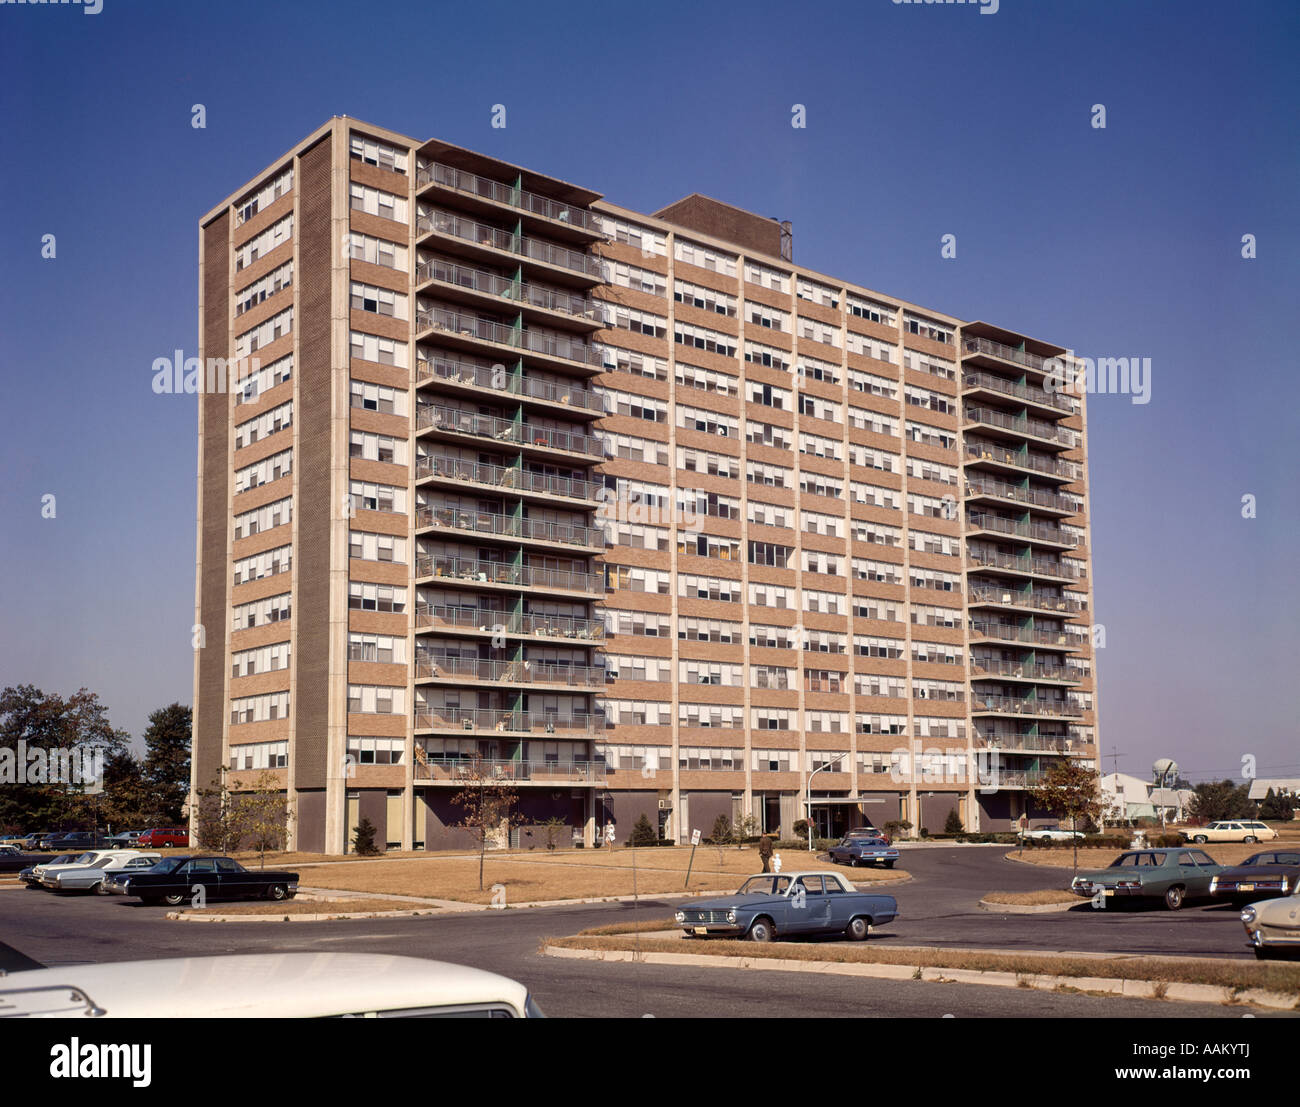 1960s ARCHITECTURE HIGH RISE APARTMENT BUILDING - Stock Image